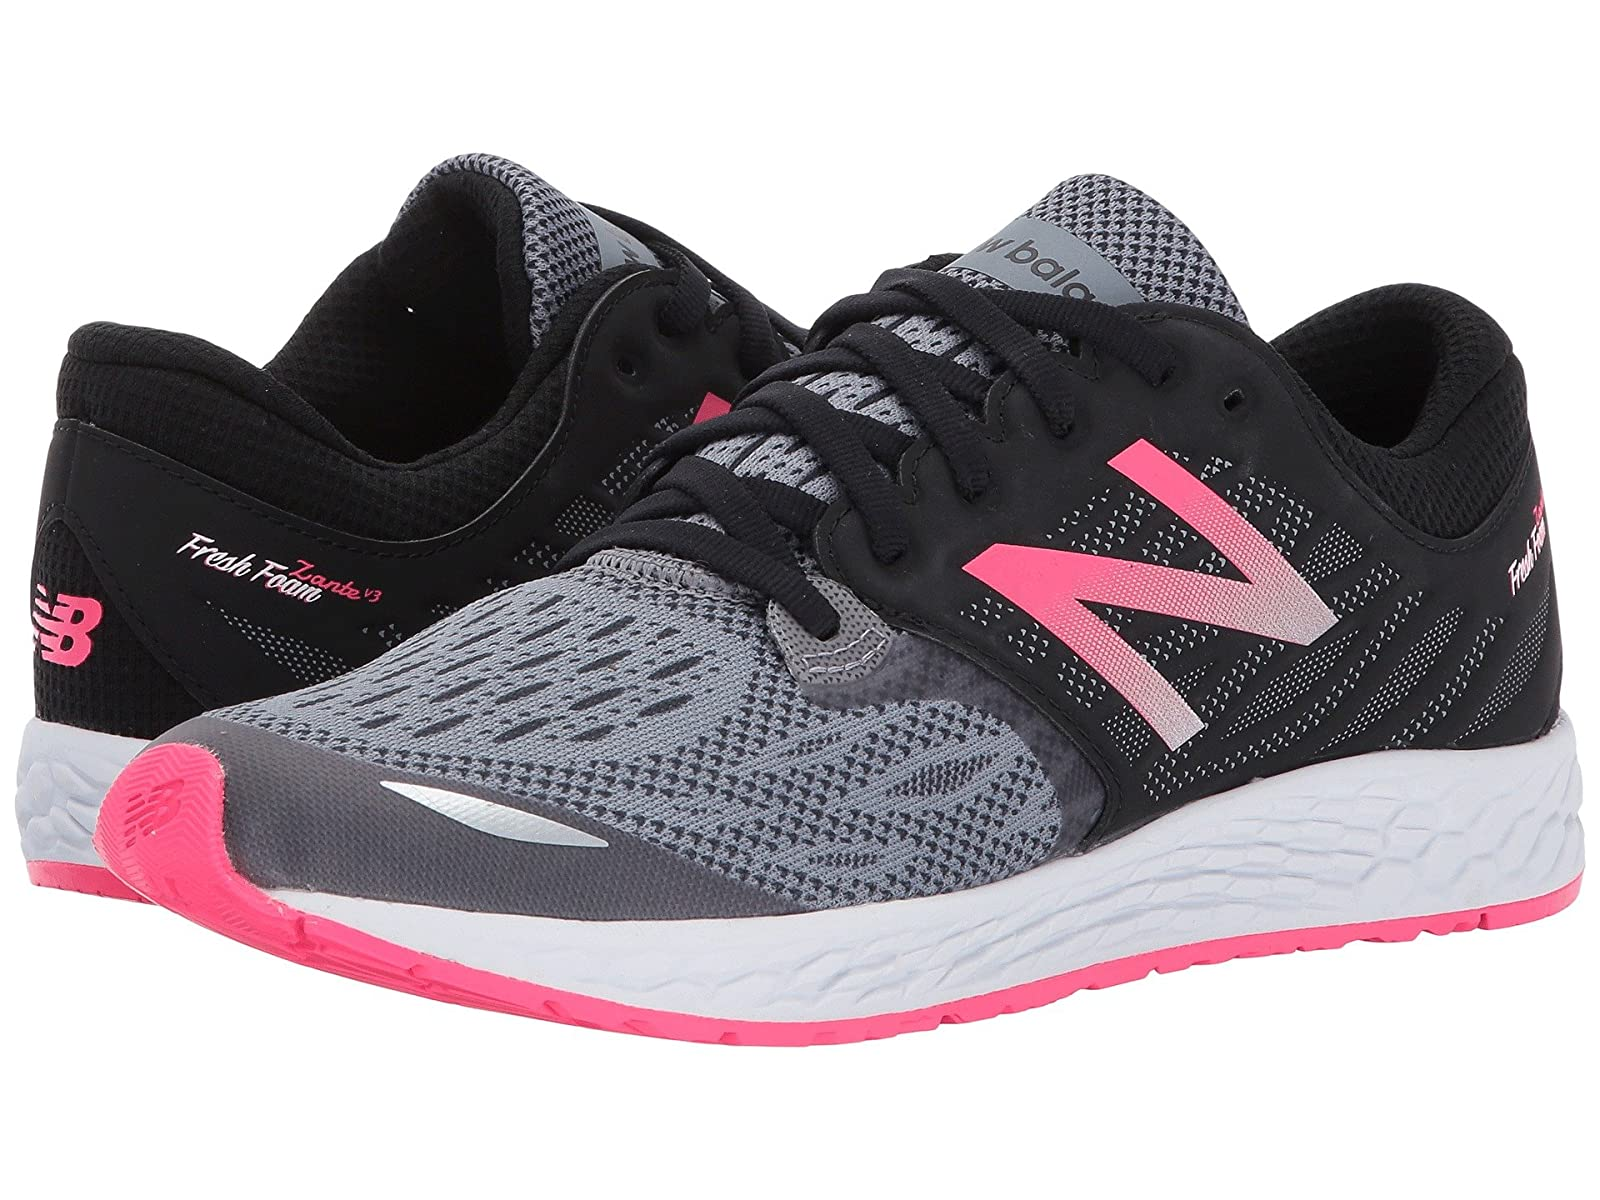 New Balance Kids Fresh Foam Zante v3 (Big Kid)Cheap and distinctive eye-catching shoes